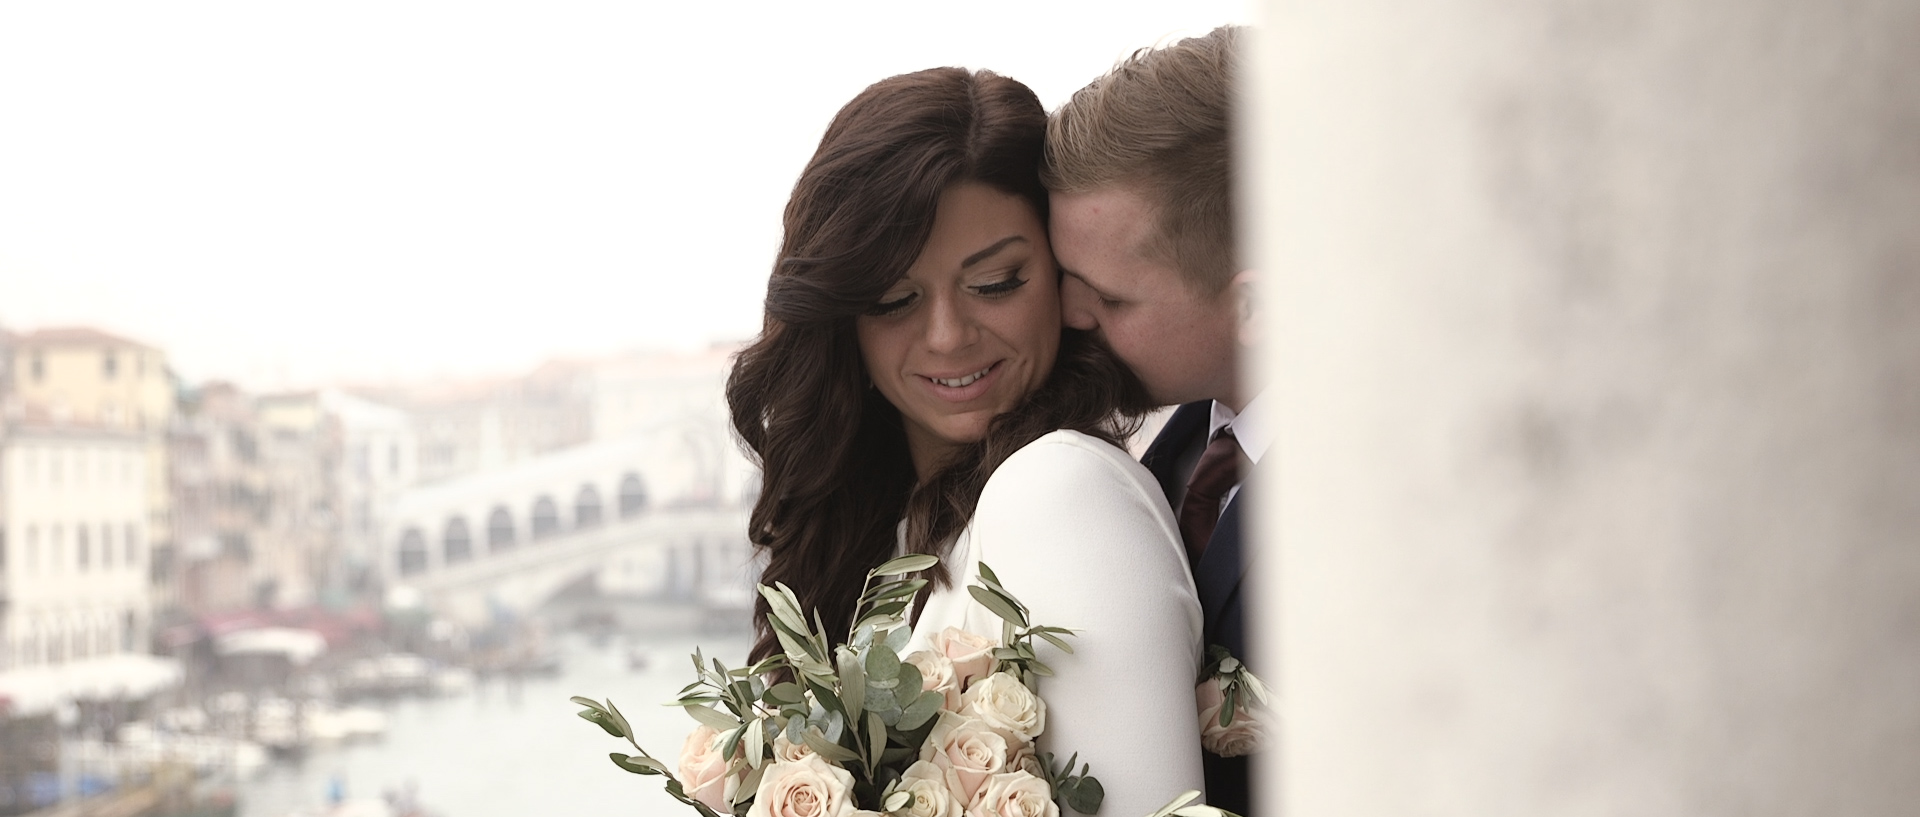 Ashleigh & Tyler elopement in Ca Sagredo Venice wedding highlights Ashleigh & Tyler elopement a Venezia Ca Sagredo video matrimonio Destination wedding videographer Venice Florence Tuscany Amalfi Apulia Como Garda